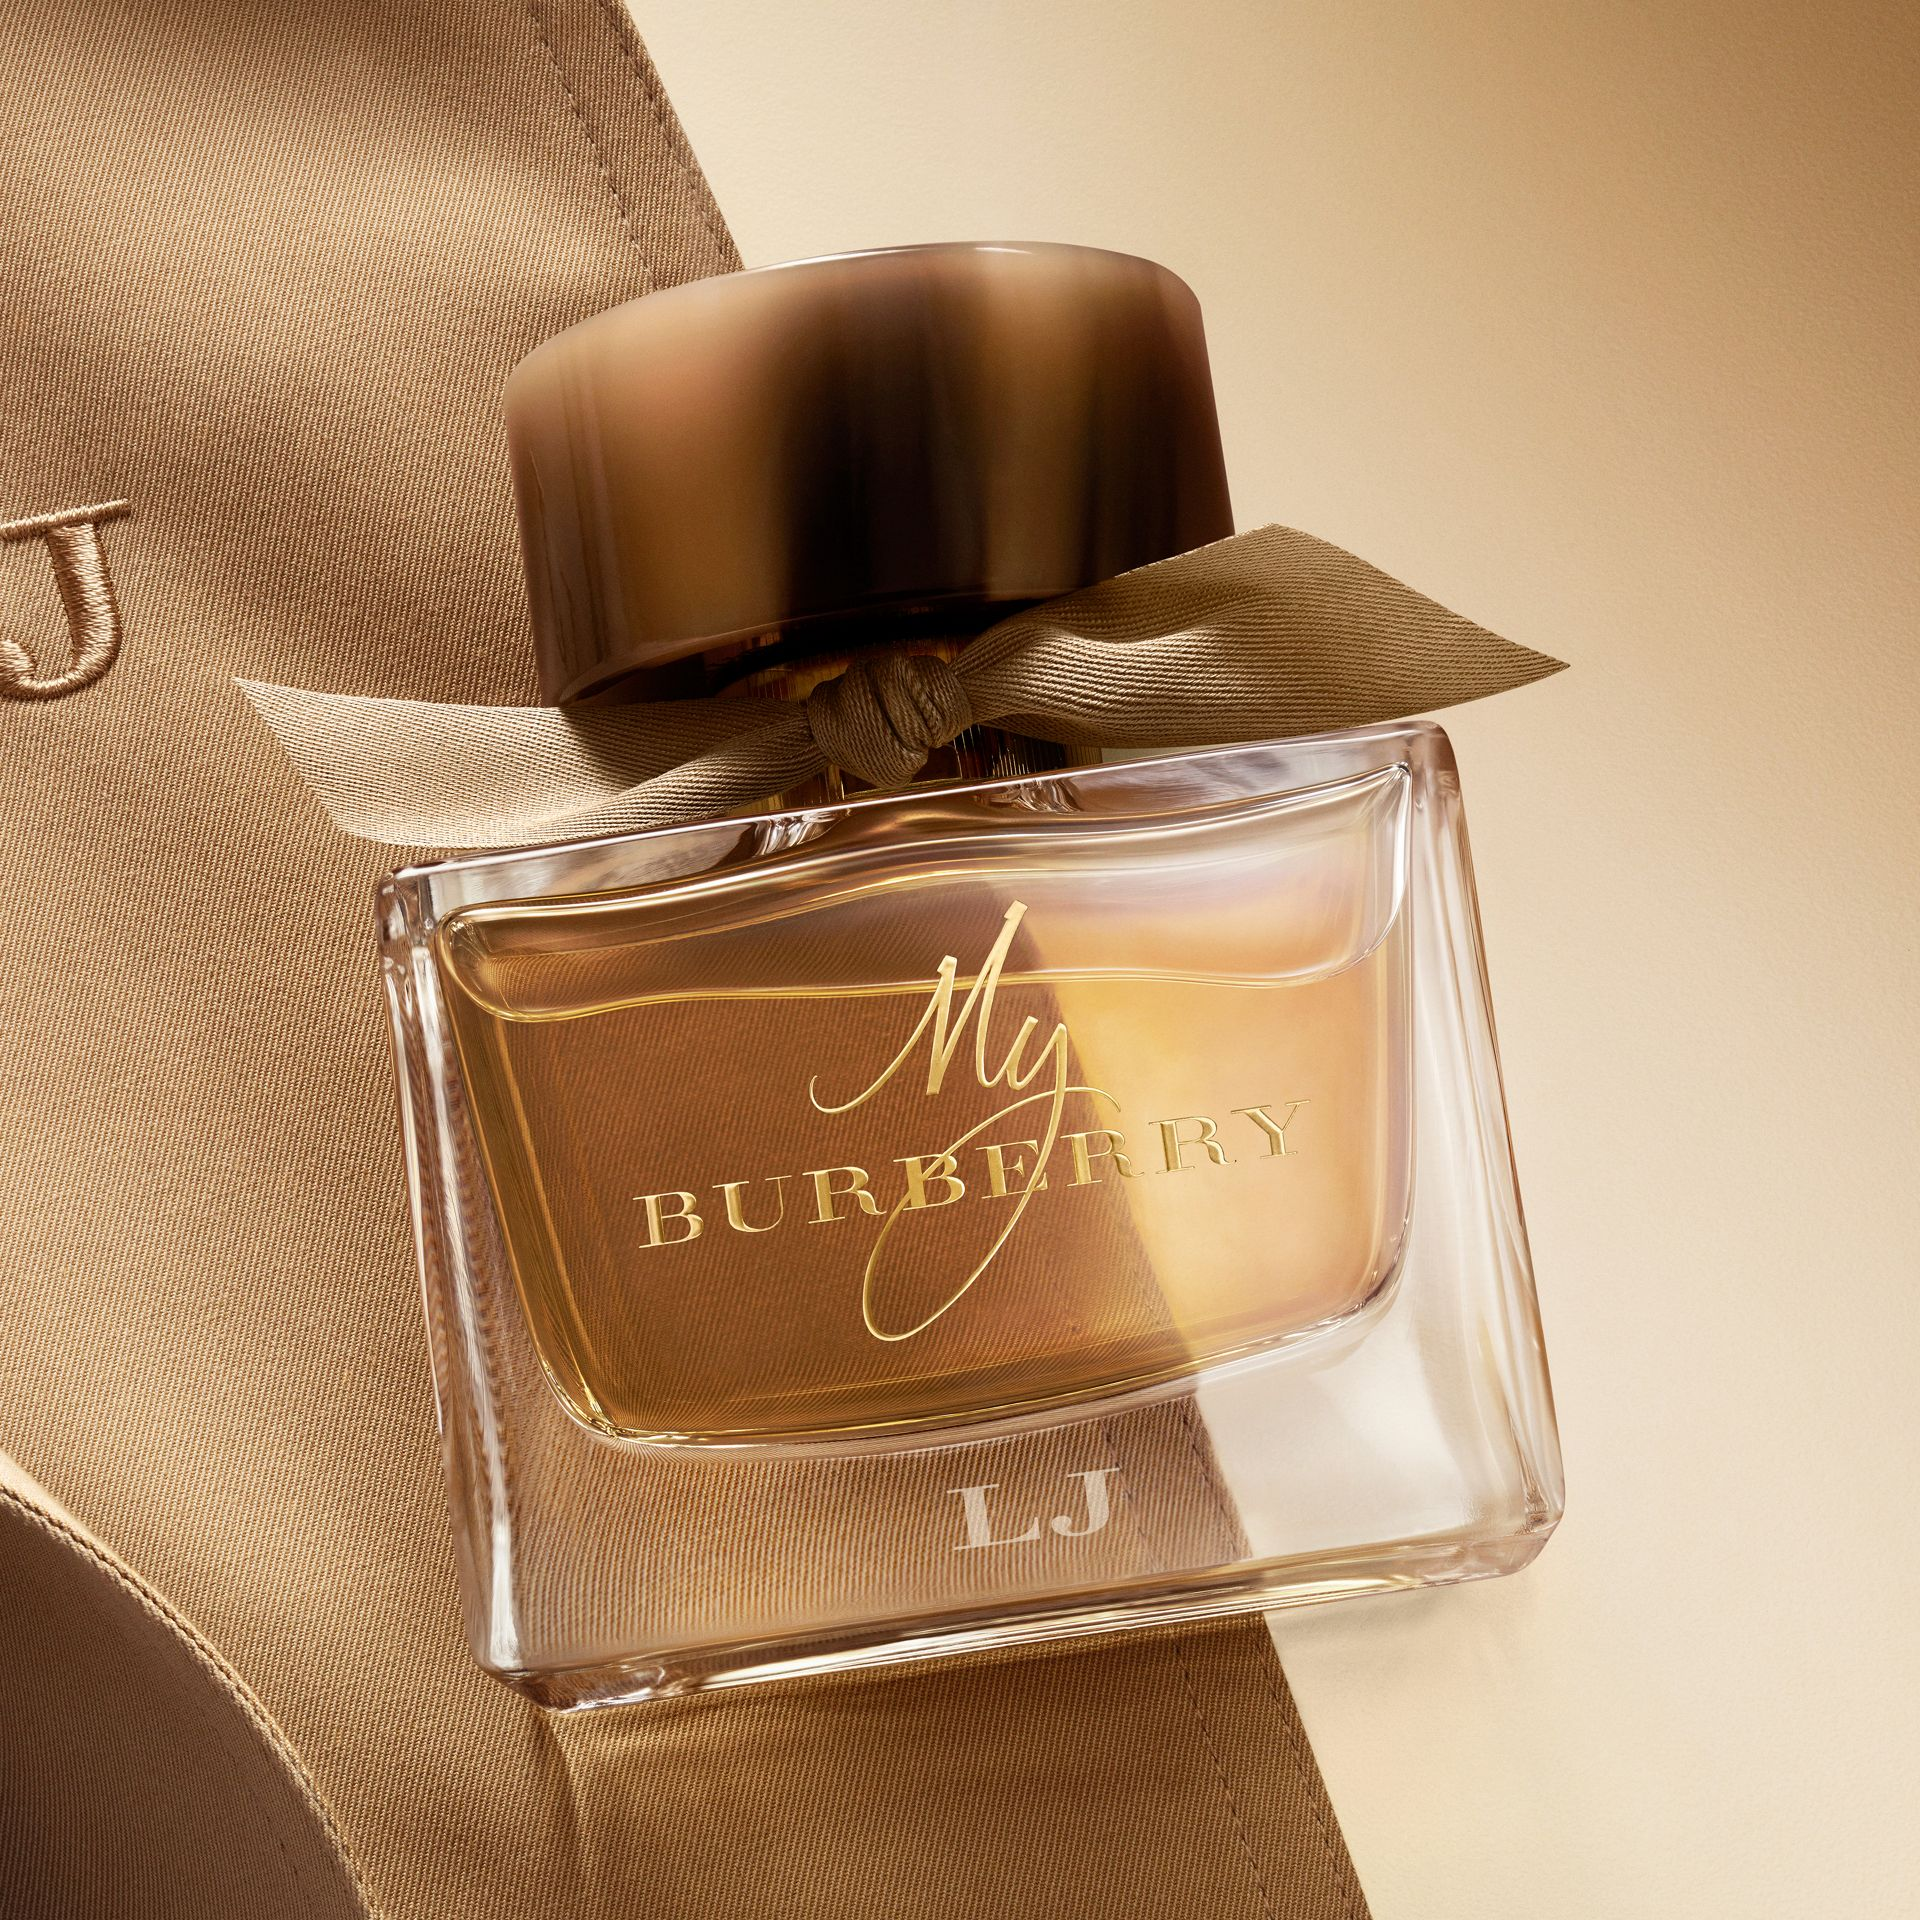 My Burberry Eau de Parfum 30 ml (30ml) - Damen | Burberry - Galerie-Bild 4